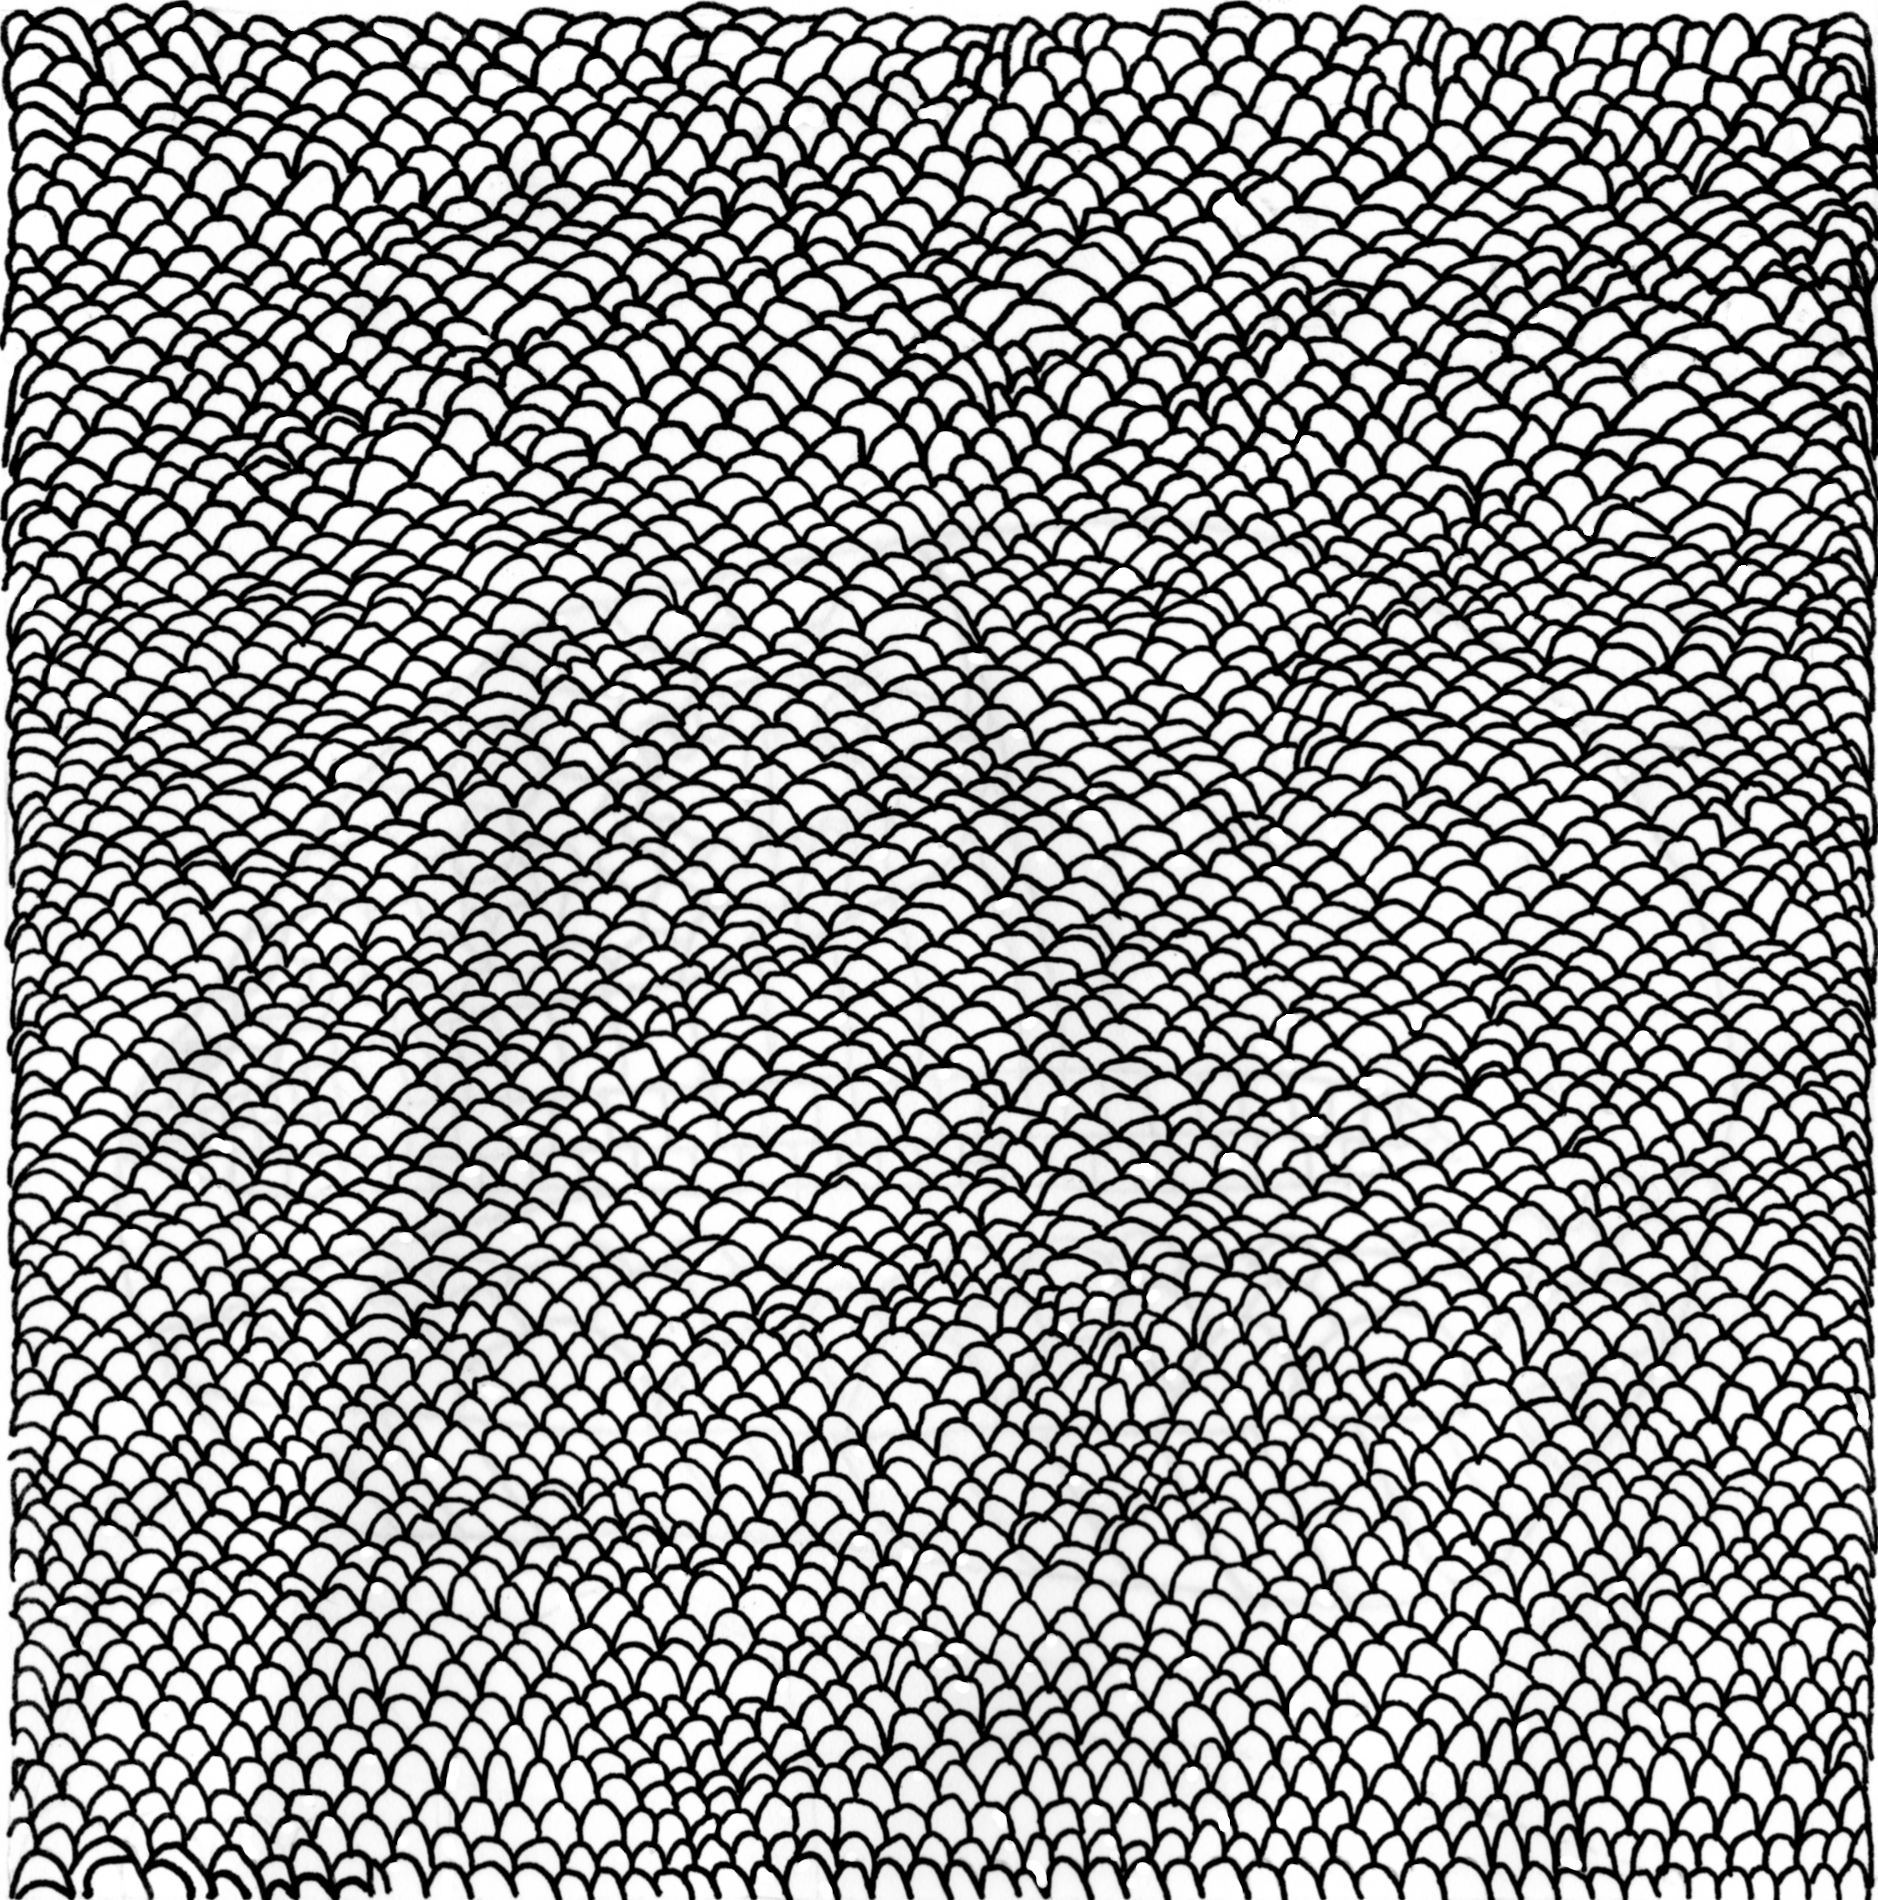 Handdrawn Dragon Scale Texture By Bisected8 Png 1878 1900 How To Draw Hands Dragon Scale Texture